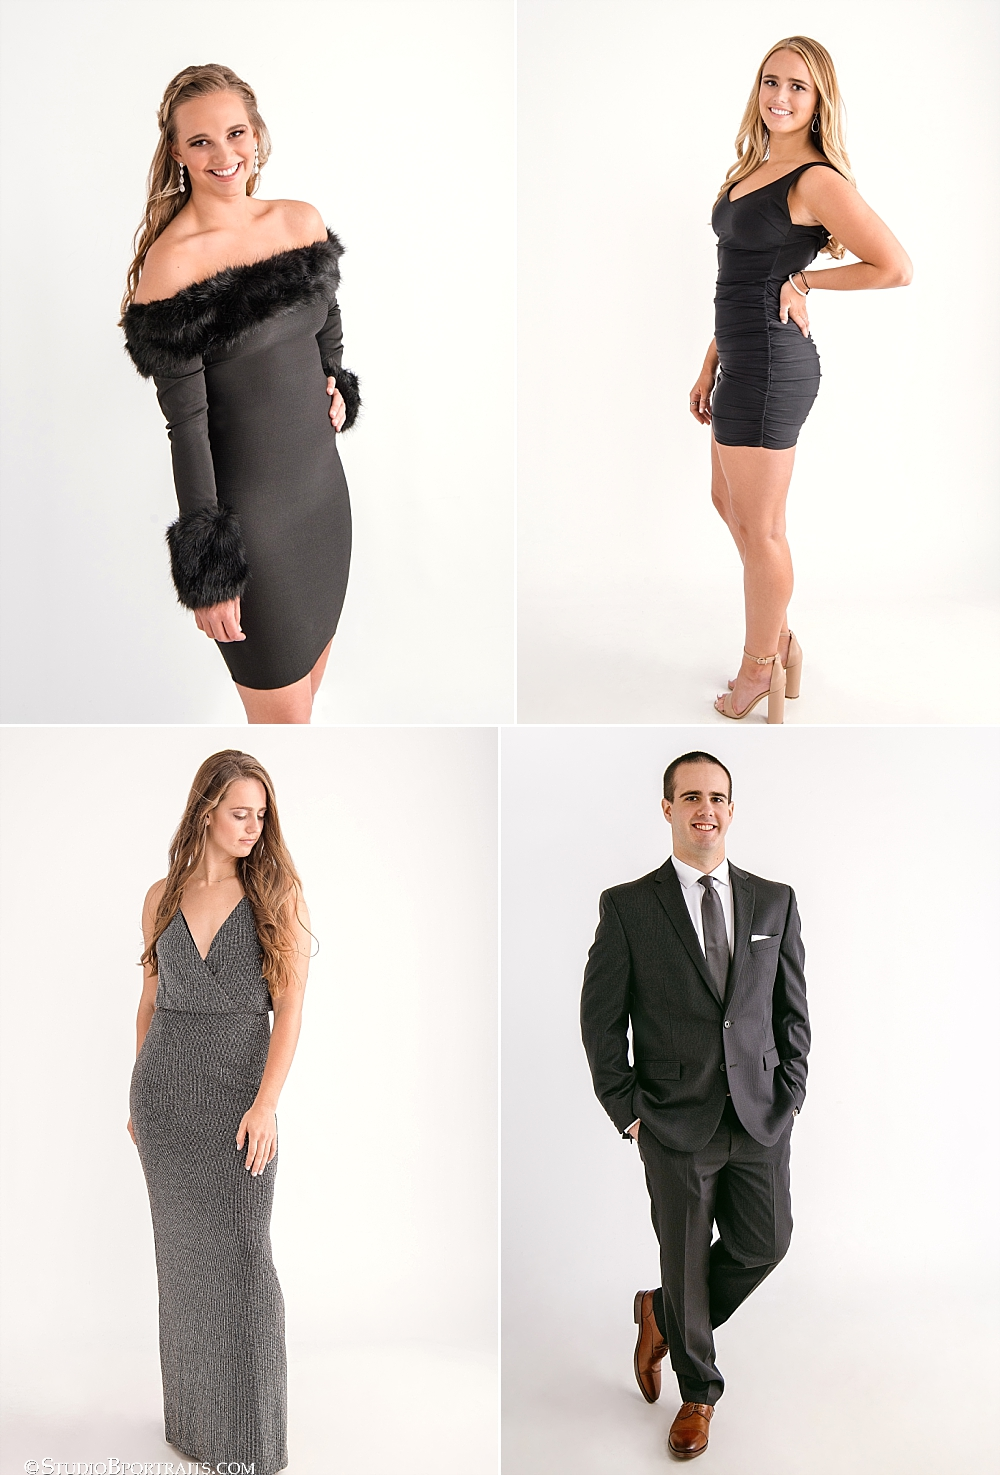 Paying special attention to favorite features and style preferences for each person is a great way to add variety to the overall look and feel of your family portraits. Adore your neckline? Show a little shoulder. Beautiful biceps? - go sleeveless. Love your legs? Why not put those gams on display!